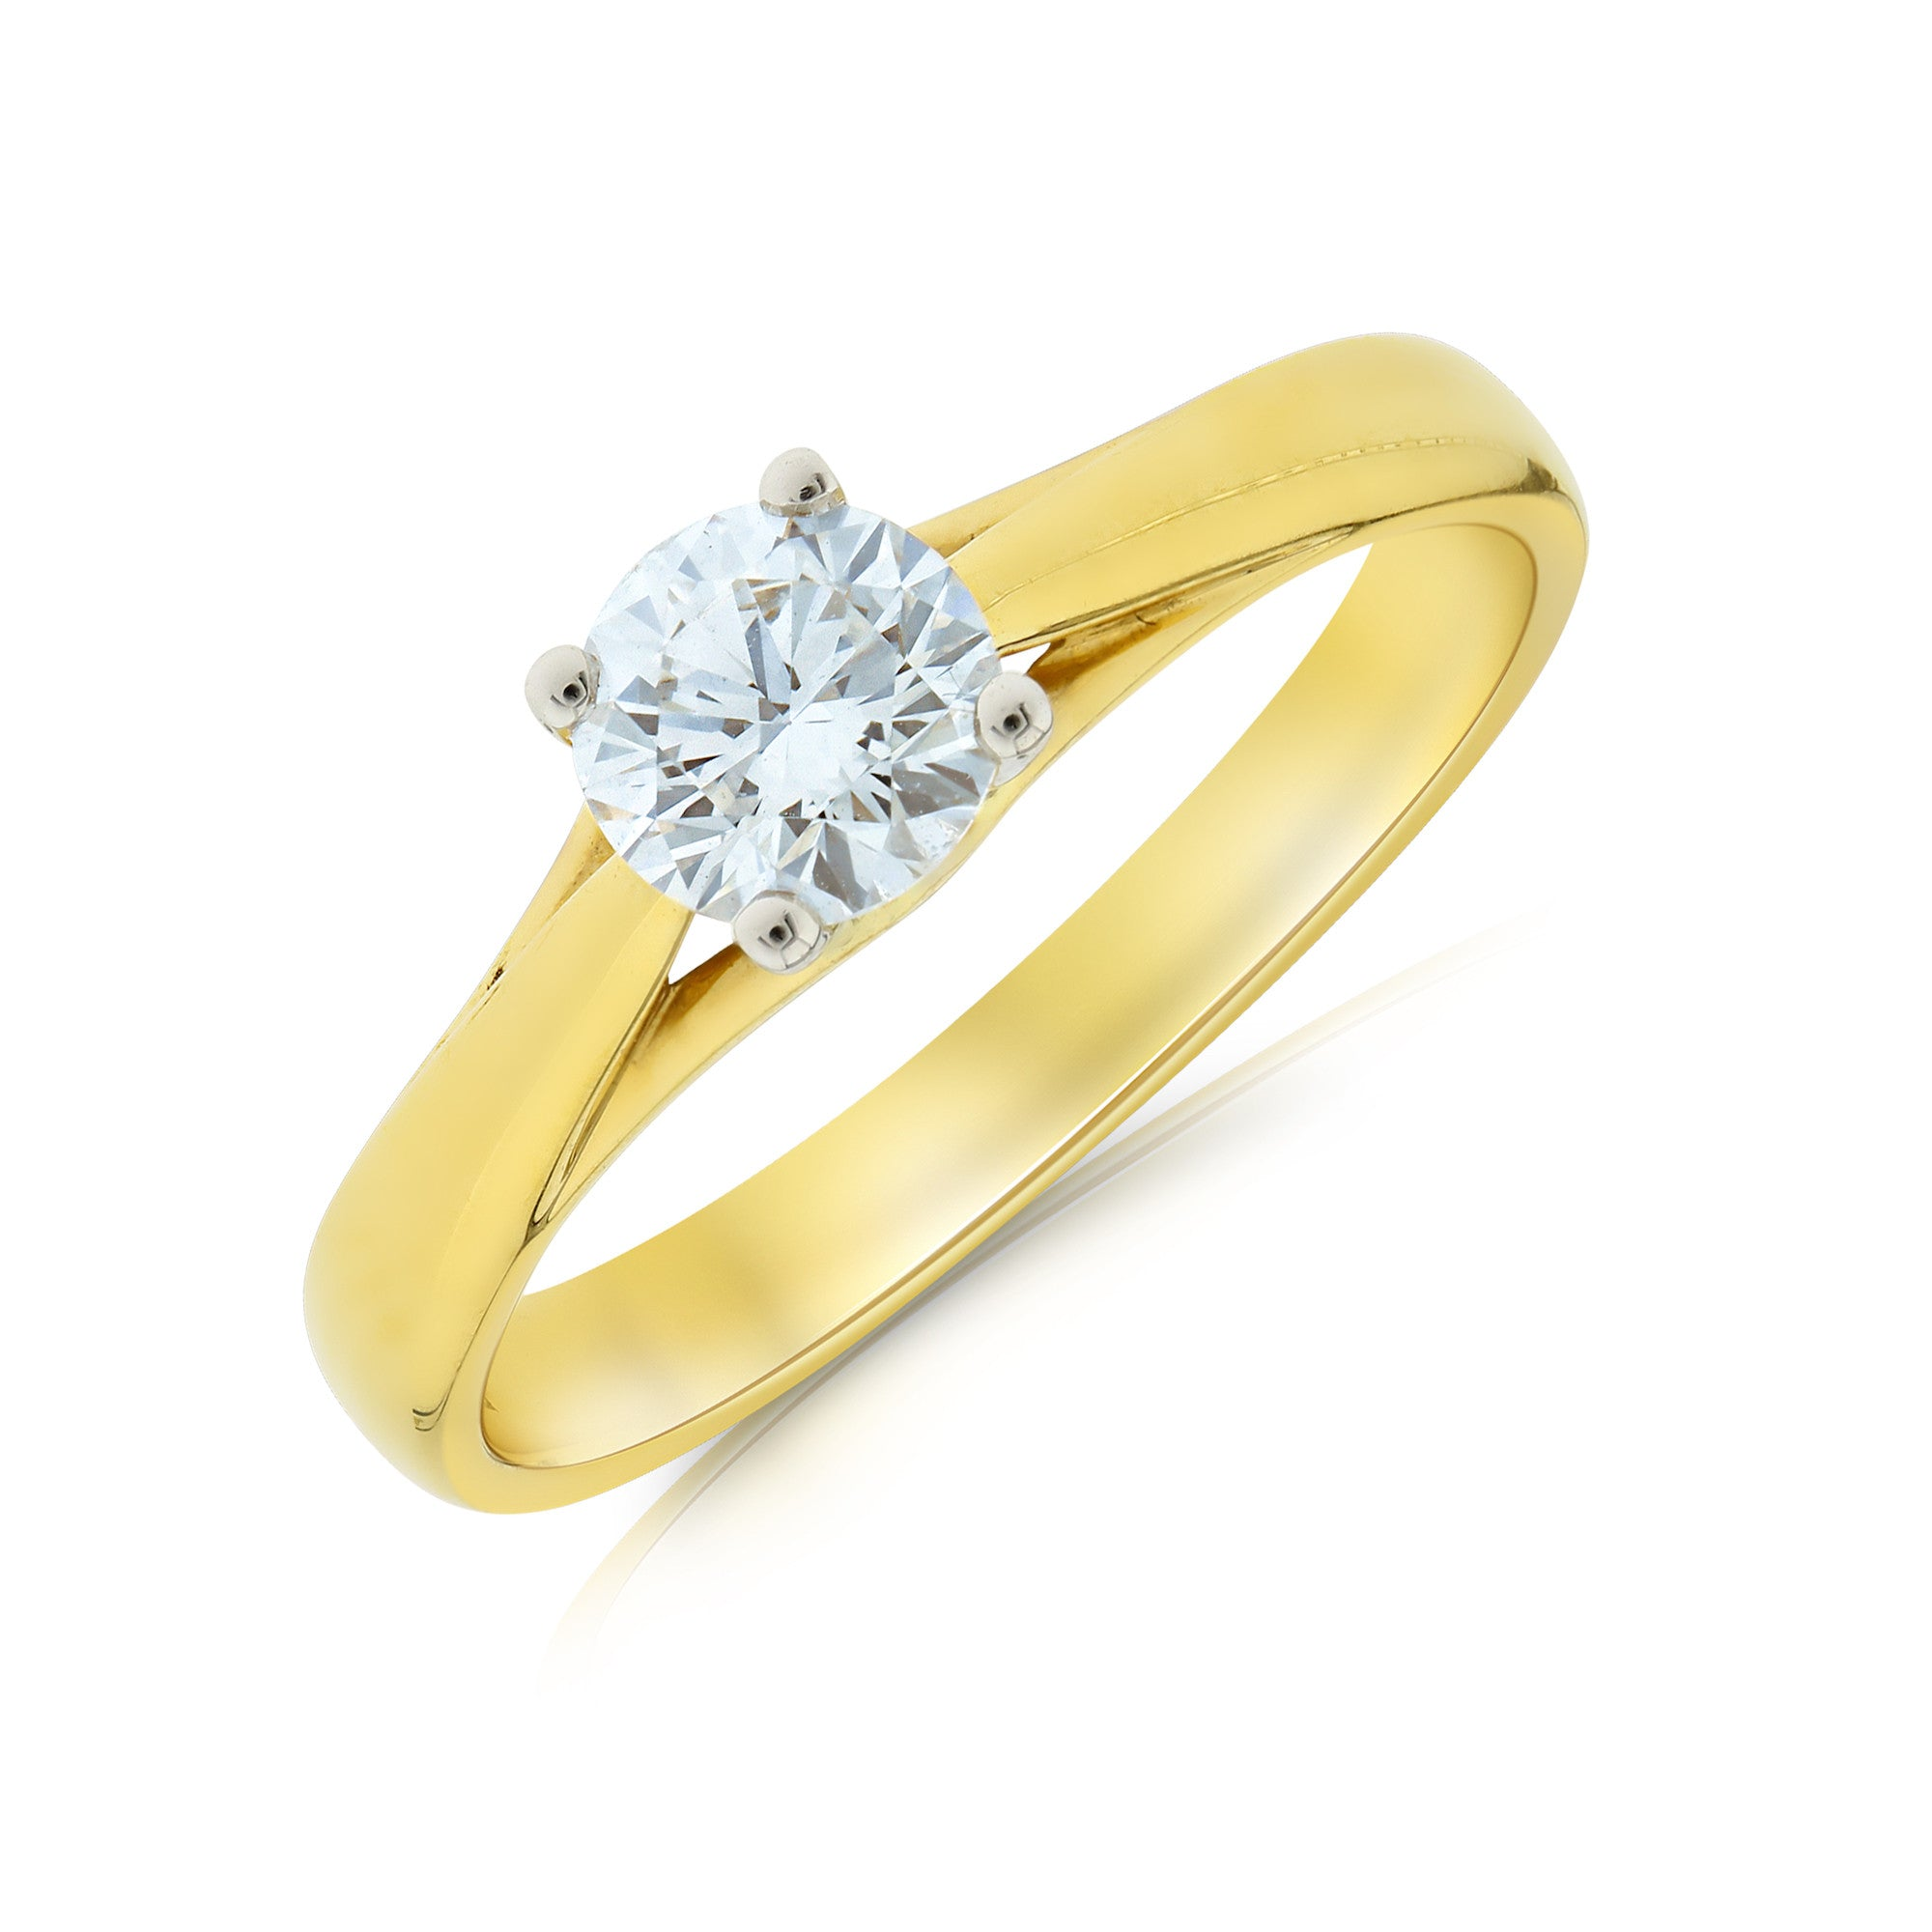 mie weight eternity gold total rose carat diamond the one band no with karat ring products